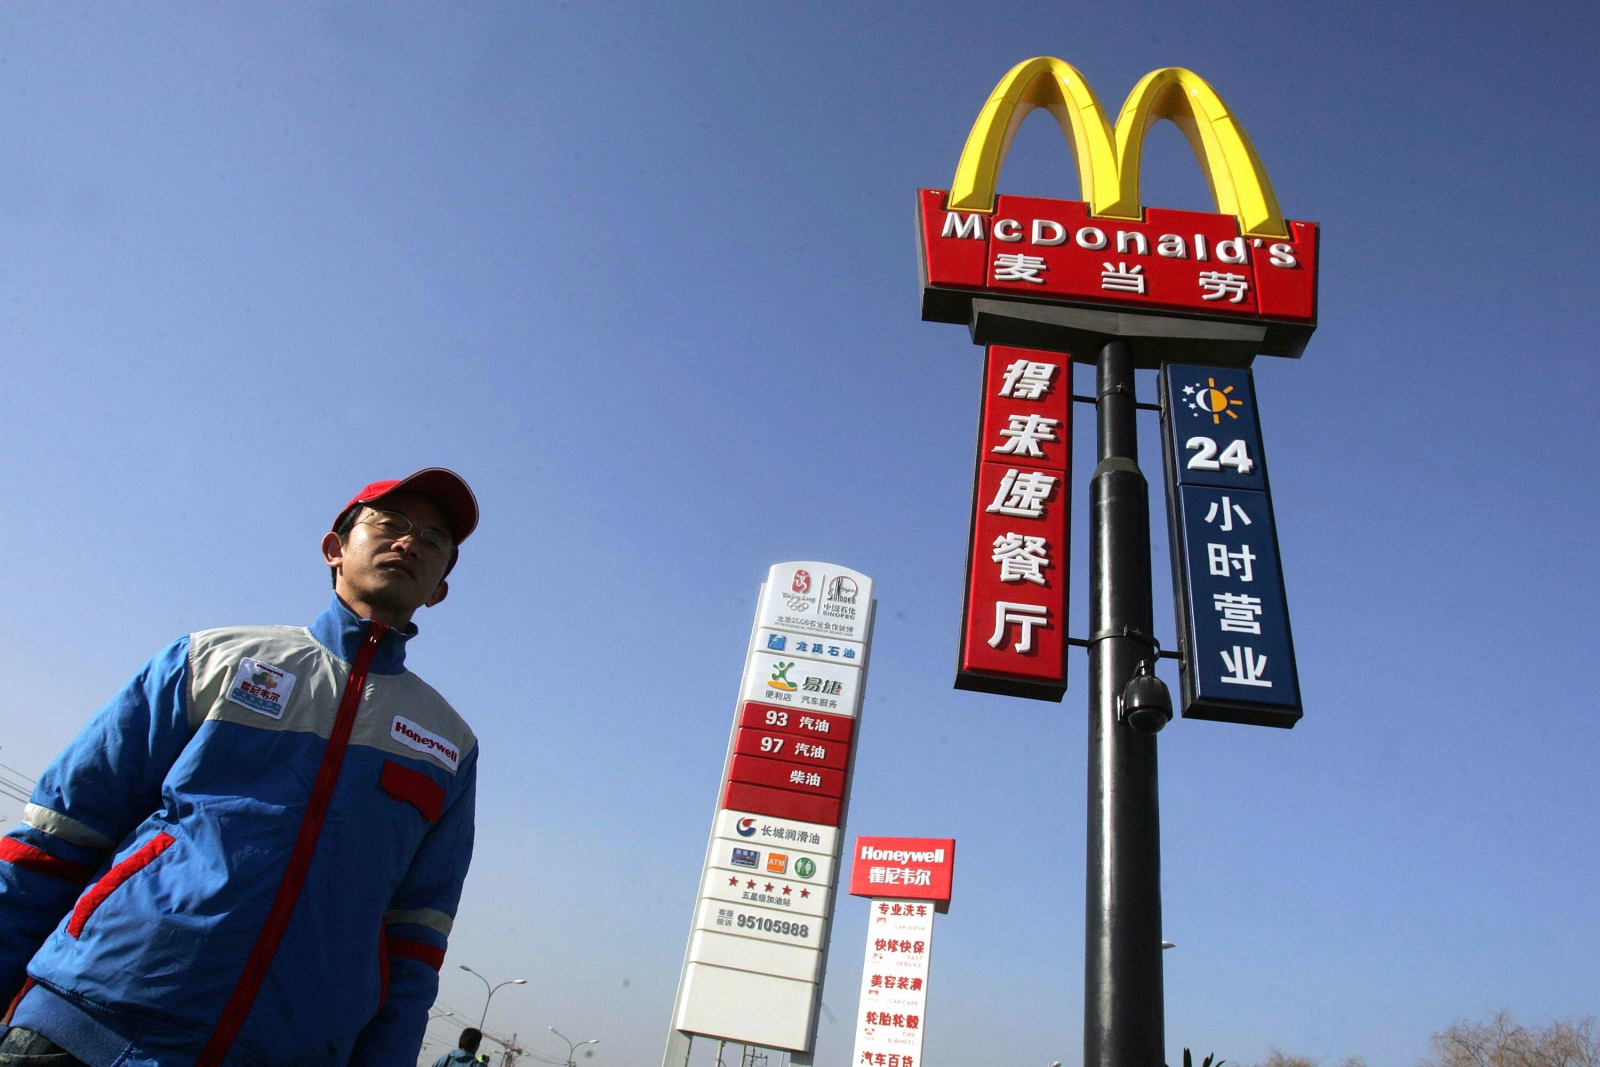 McDonald's worker in China